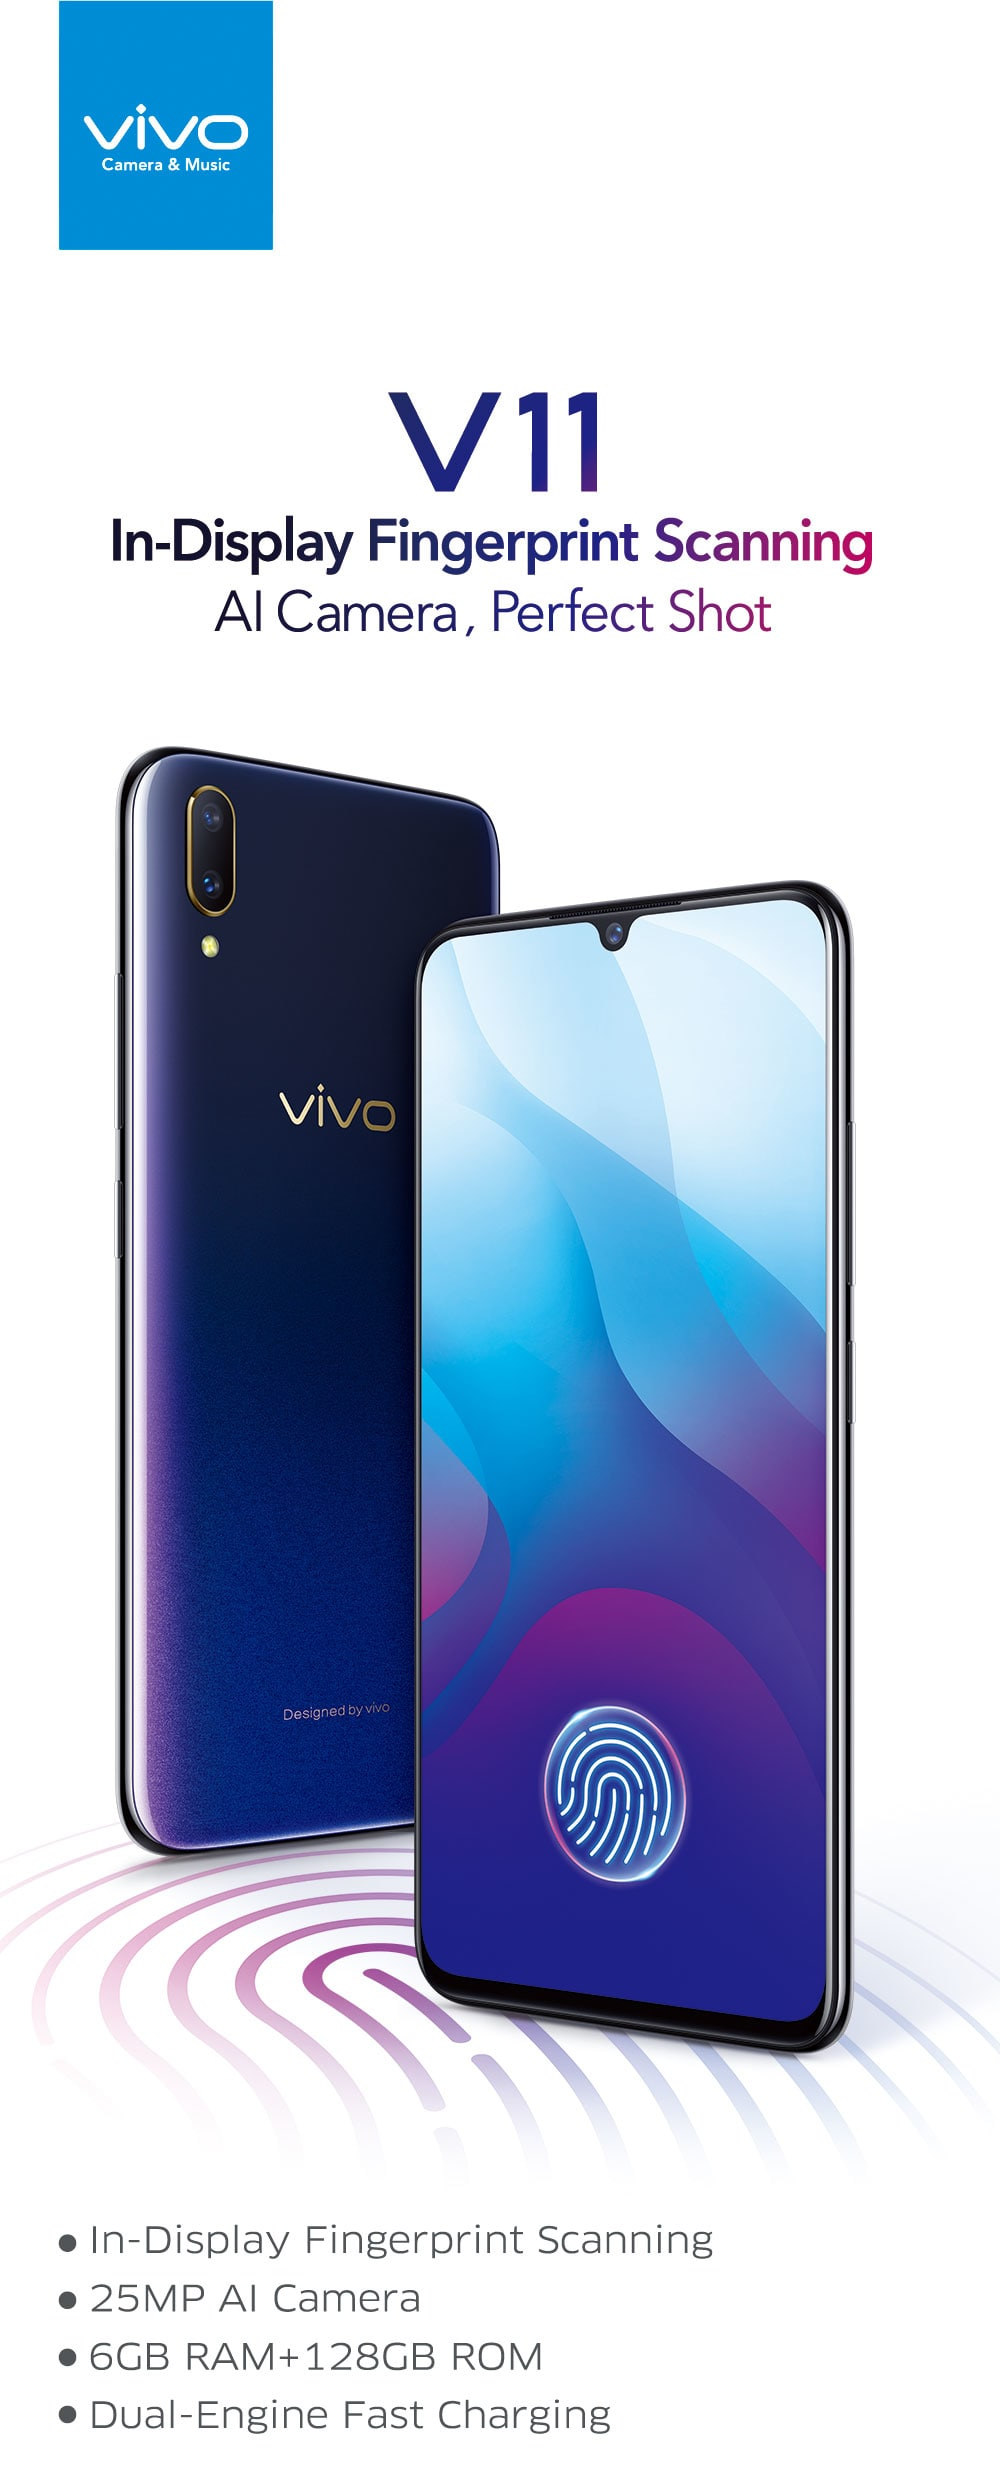 Vivo V11 4G Phablet 6.41 inch Android 8.1 Snapdragon 660 Octa Core 6GB RAM 128GB ROM 12.0MP + 5.0MP Rear Camera Fingerprint Sensor 3400mAh Built-in- Blueberry Blue